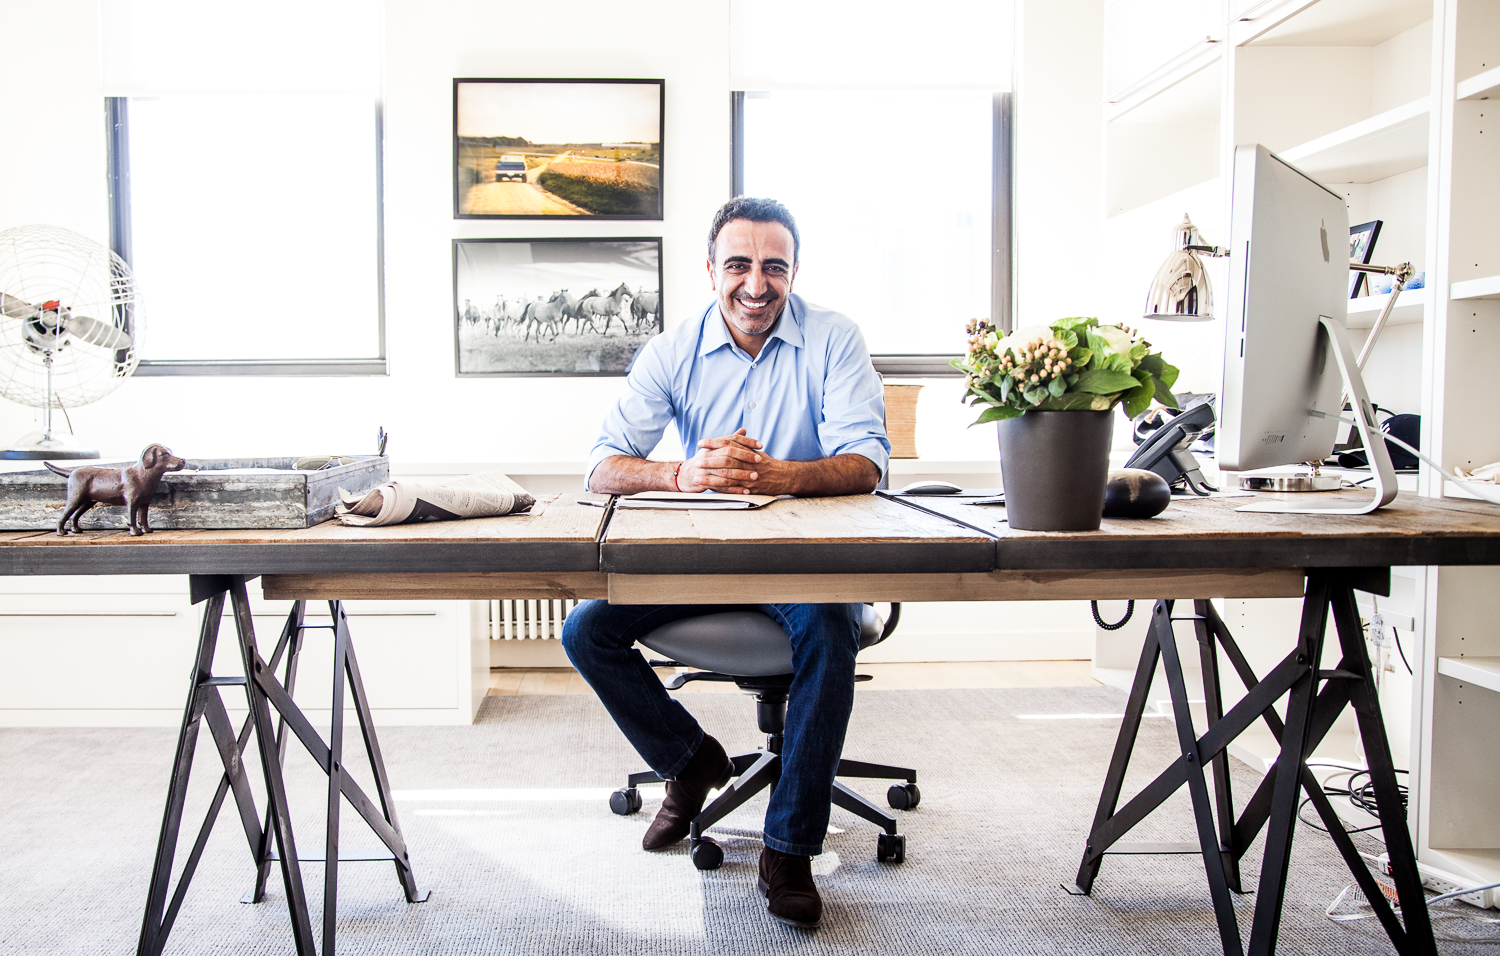 Hamdi Ulukaya, Chobani Greek Yogurt